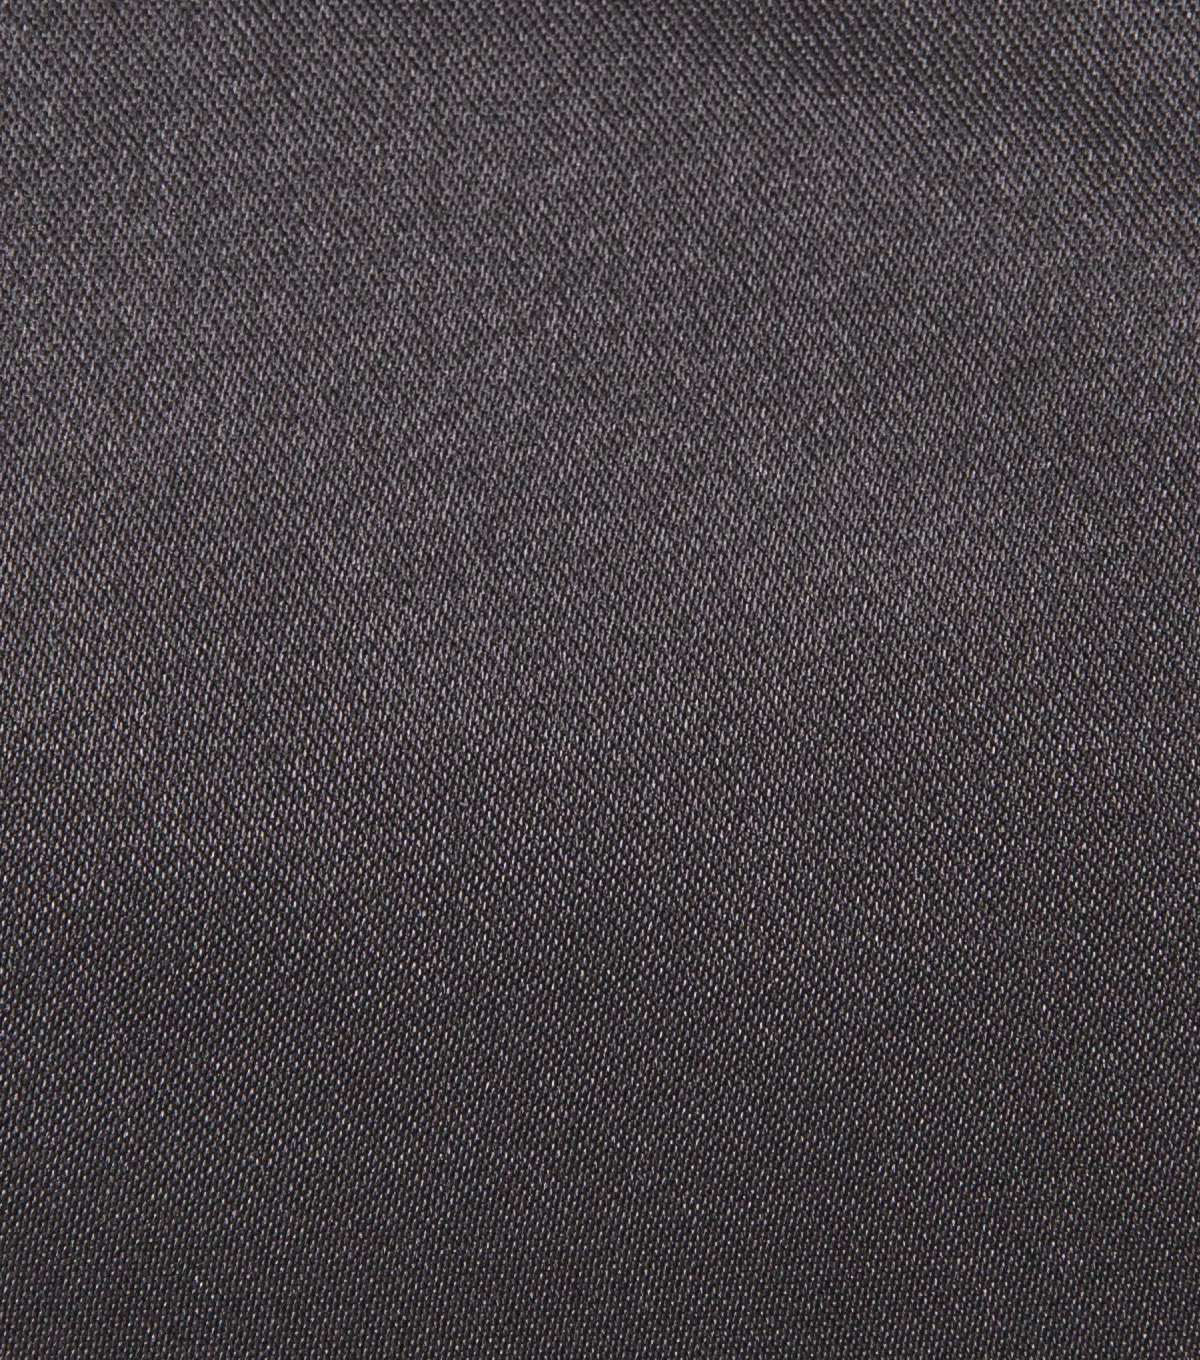 Glitterbug Satin Fabric 45\u0027\u0027-Black Solid